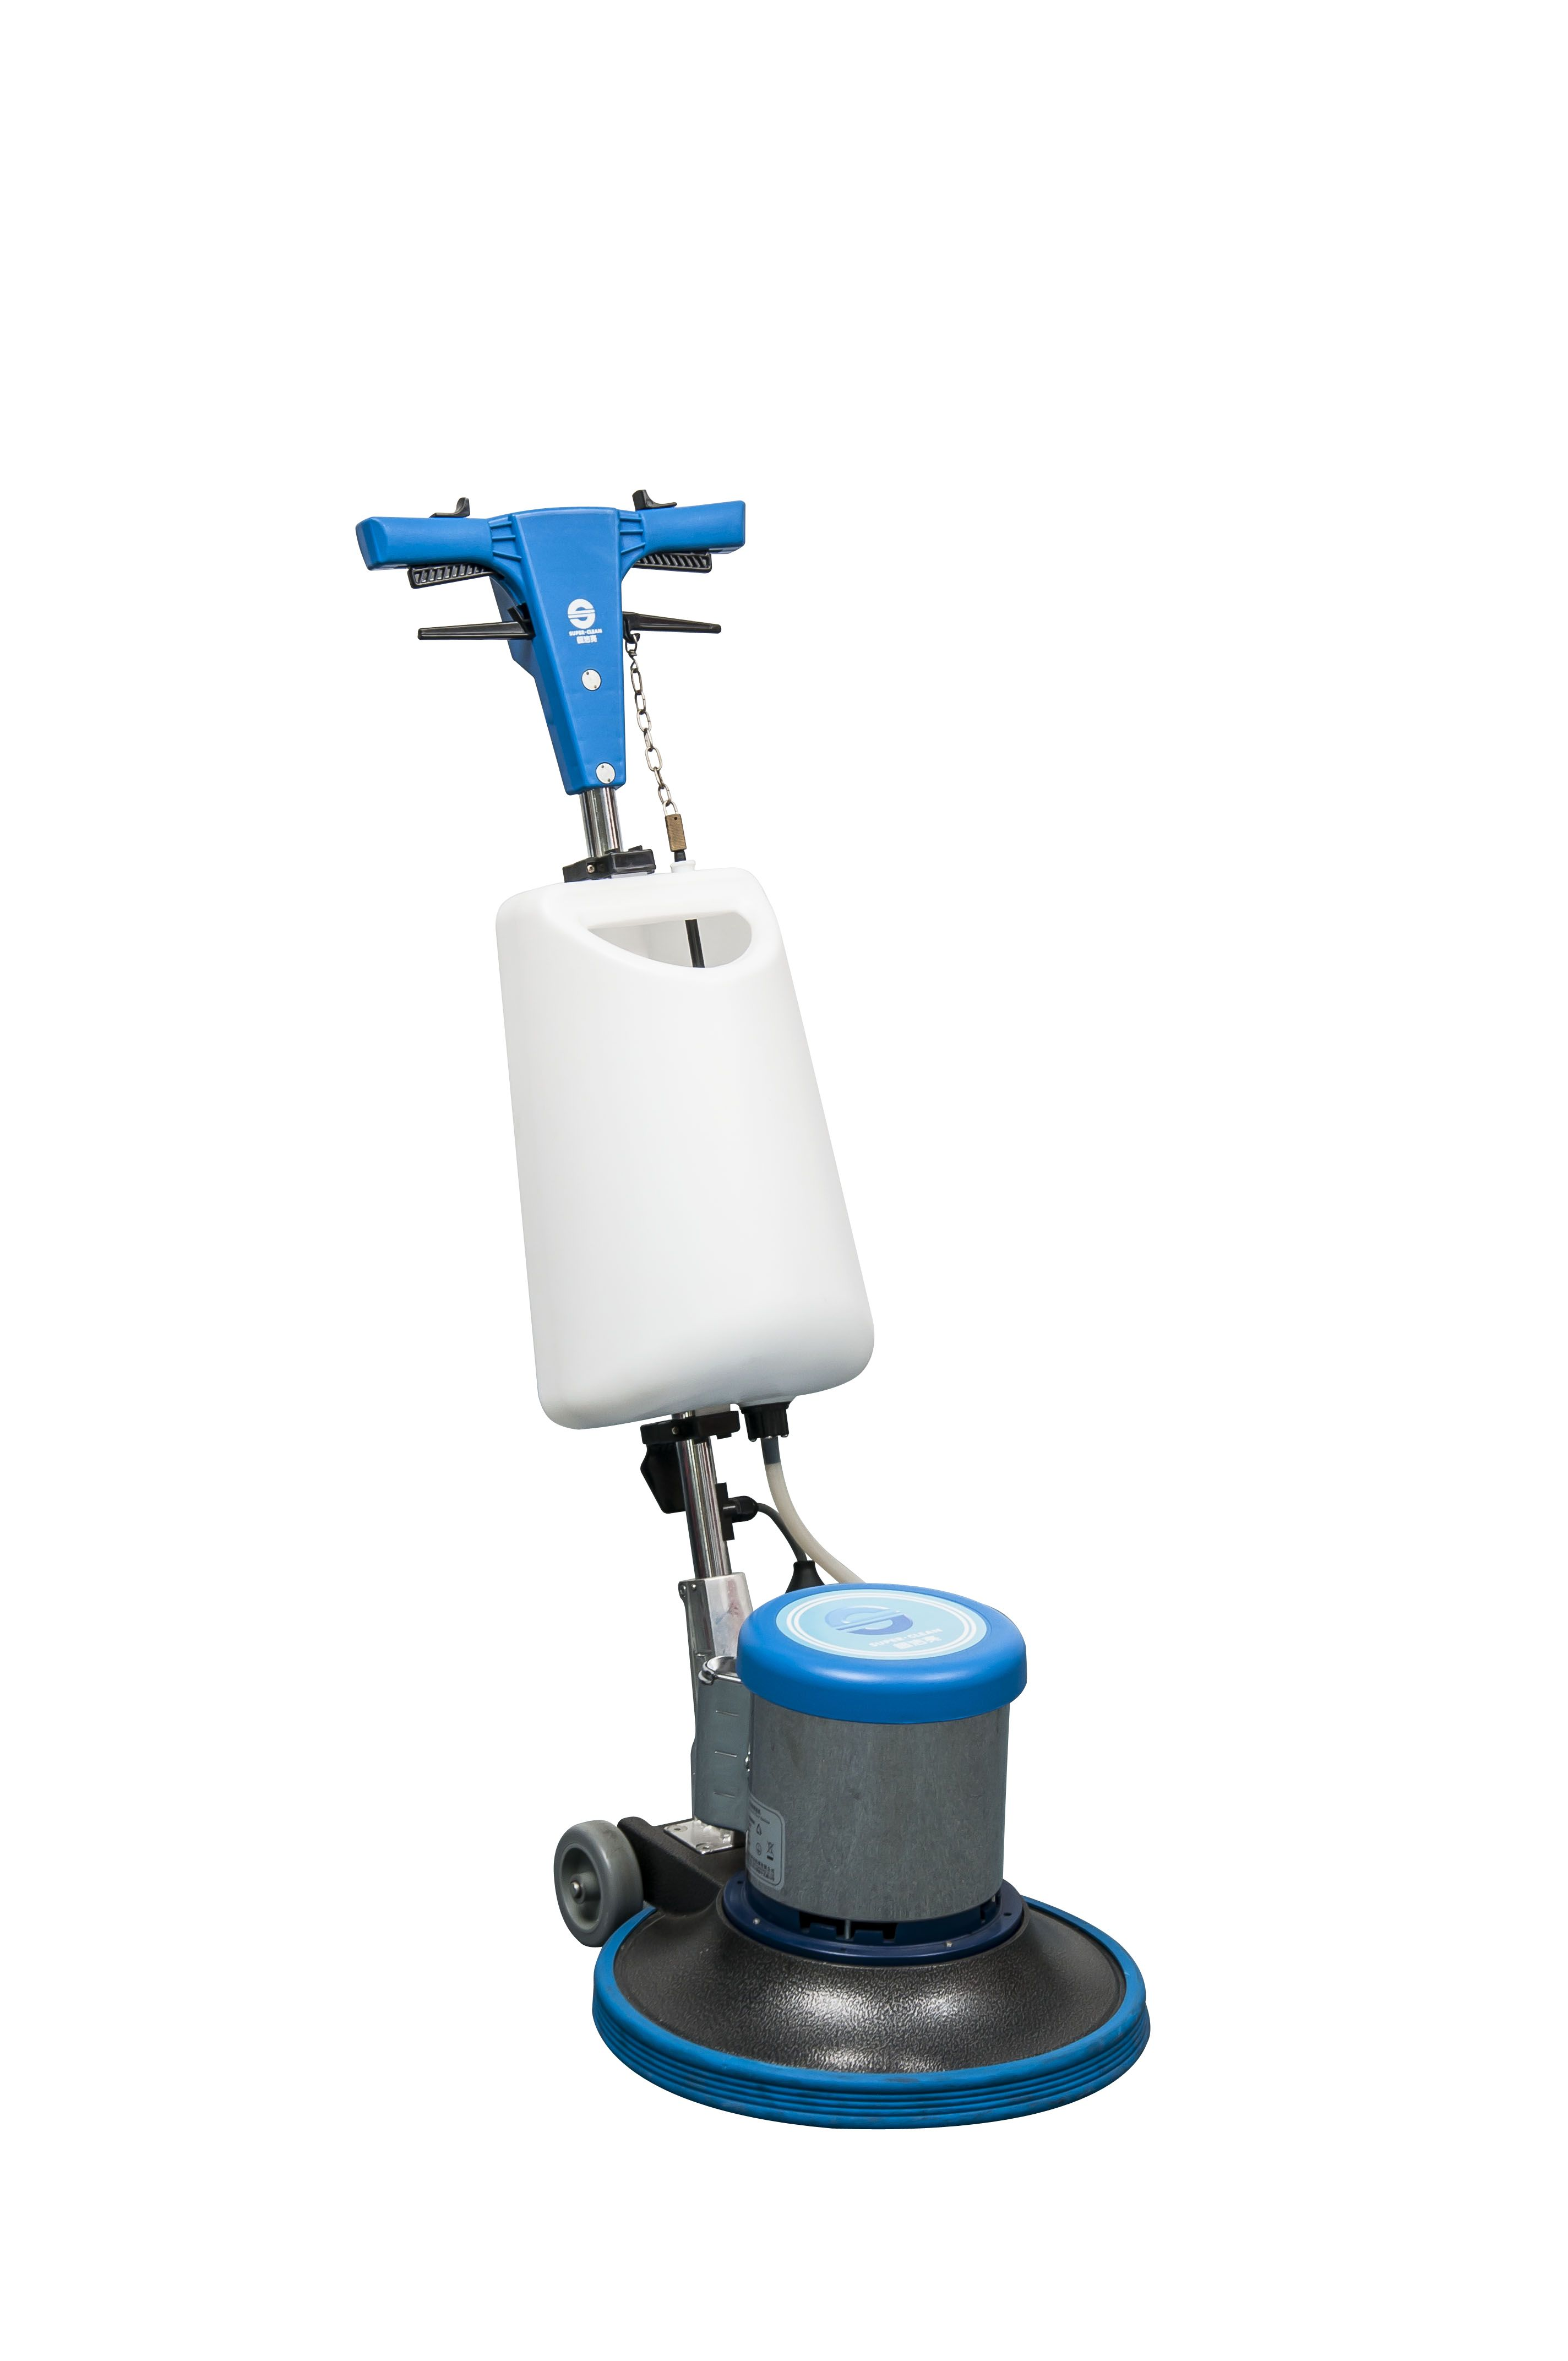 17 175 Floor Cleaning Machine Which Can Wash The Floor Carpet And